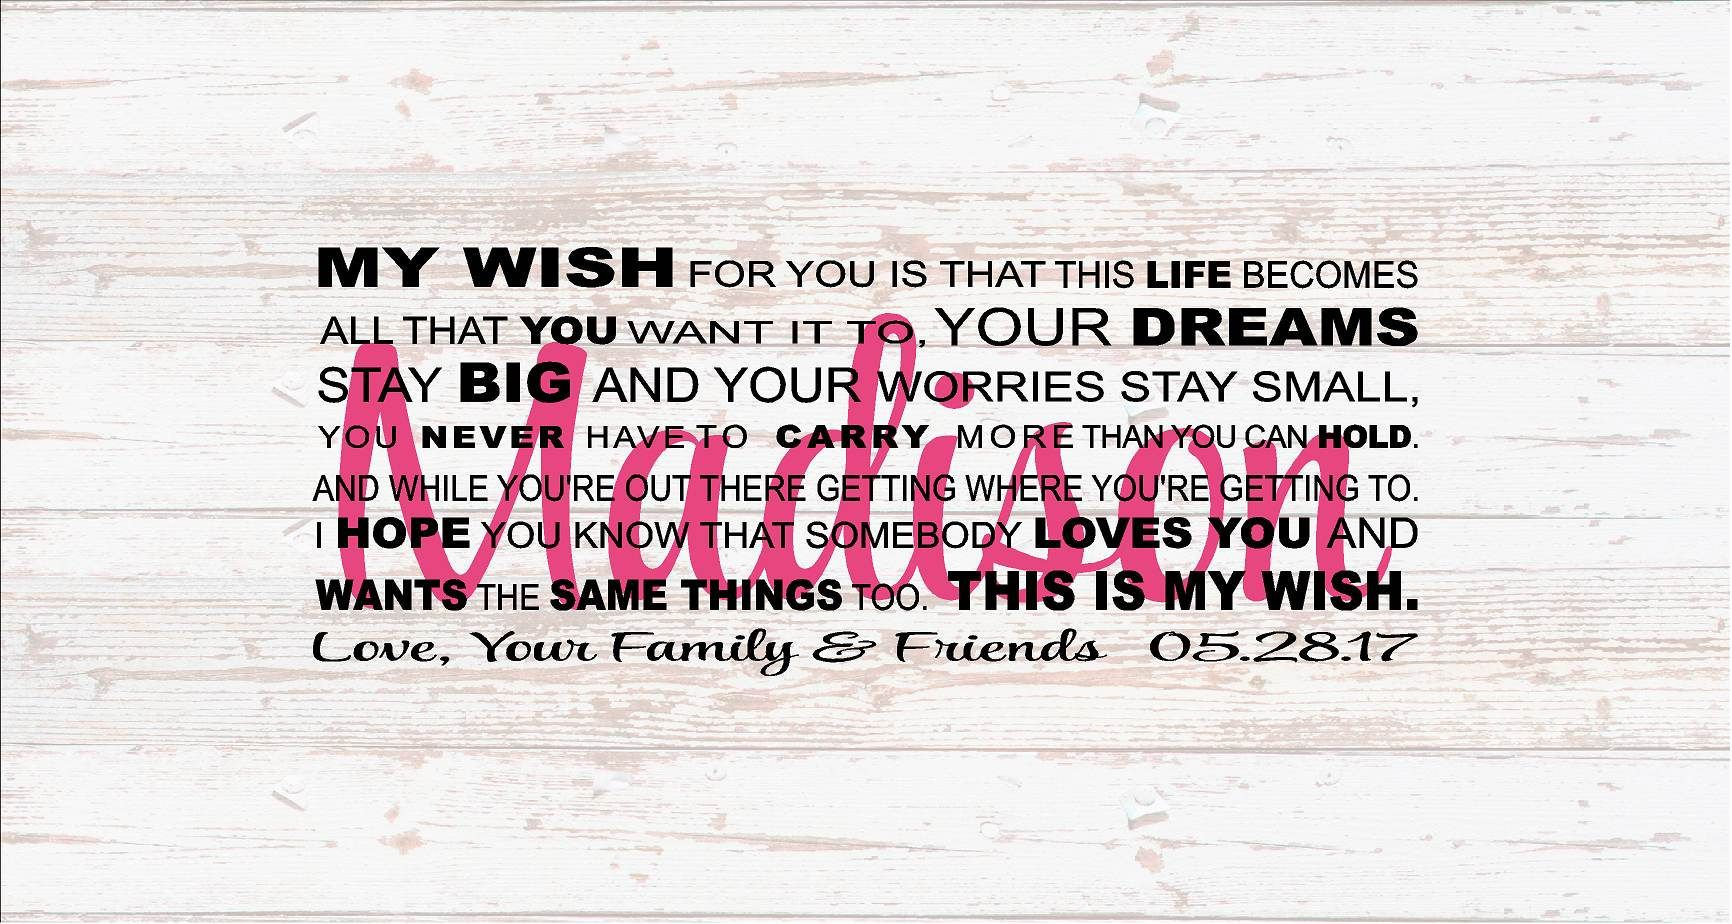 Senior 2017 Graduation My Wish For You Guest Book Alternative Christmas Gift Wood Sign Canvas Wall Art Dorm Room Teenager College by HeartlandSigns on Etsy  sc 1 st  Pinterest & Senior 2017 Graduation My Wish For You Guest Book Alternative ...